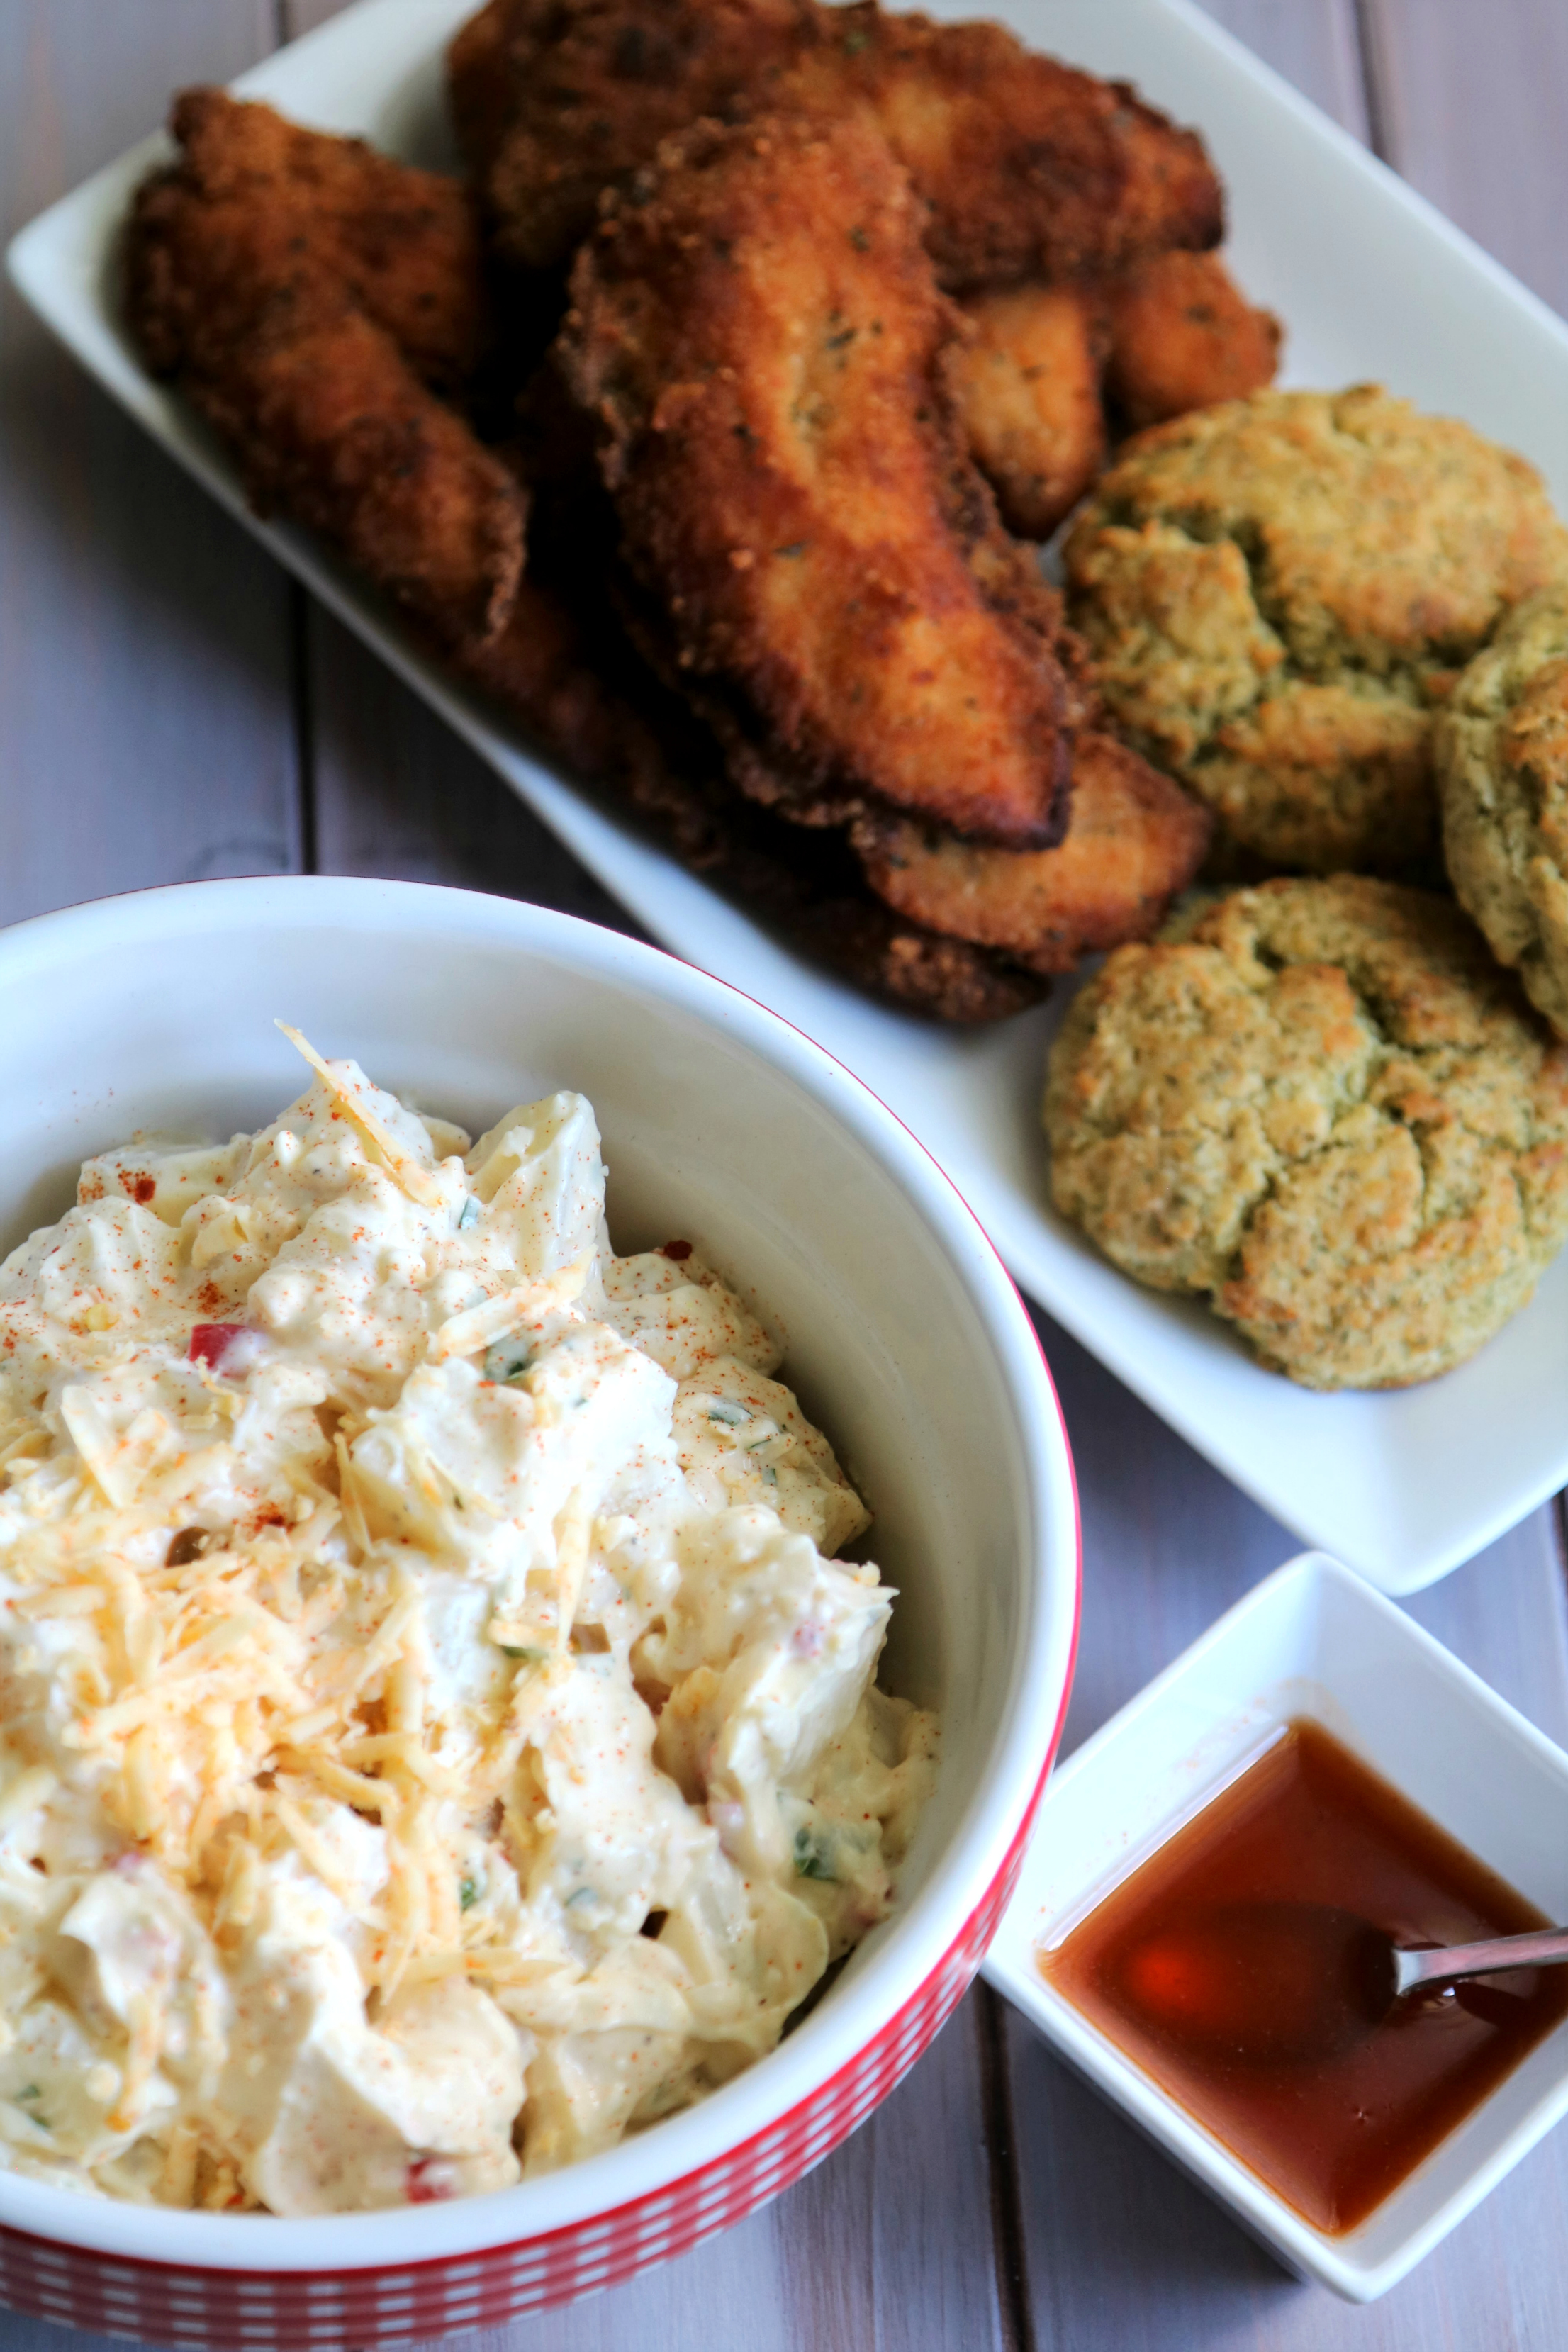 pimento cheese potato salad with crispy chicken tenders and potato dill biscuits on white platter